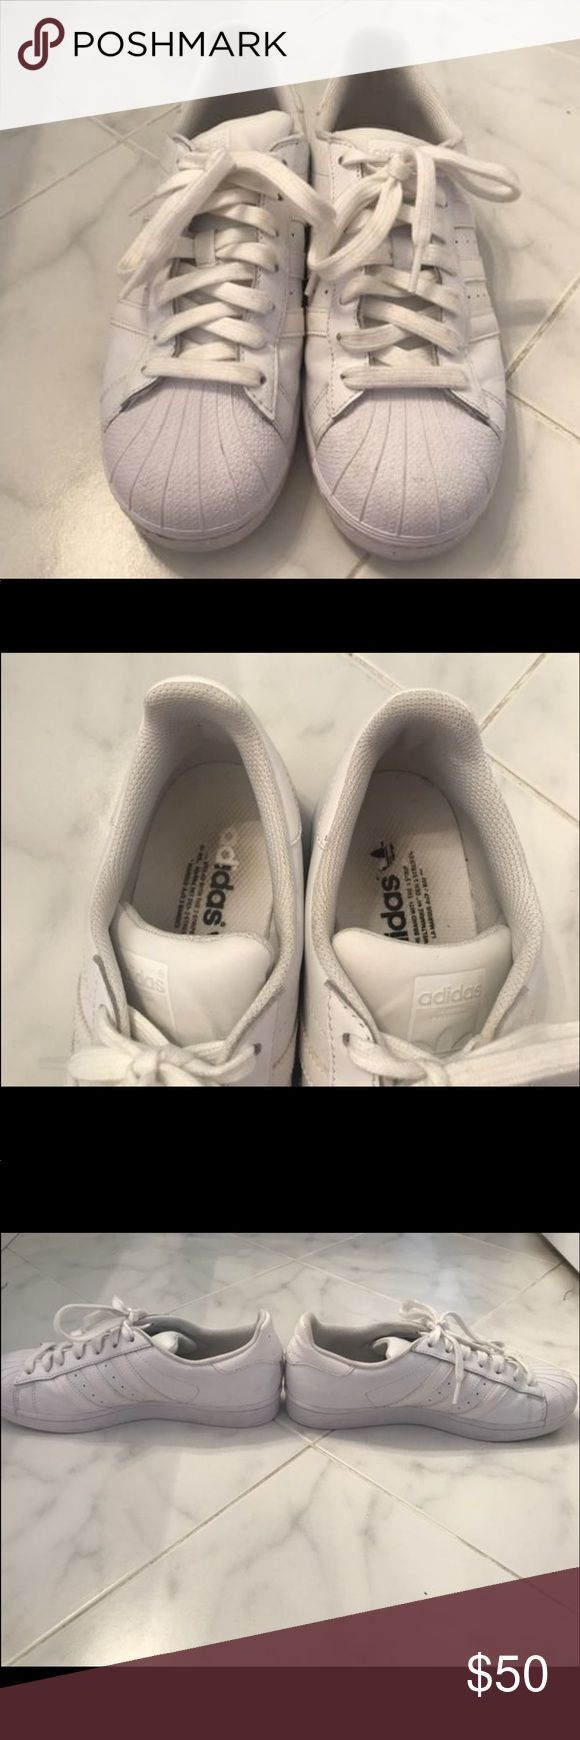 All White adidas Superstars All white Adidas Superstars. Size 10 in women's. adidas Shoes Sneakers